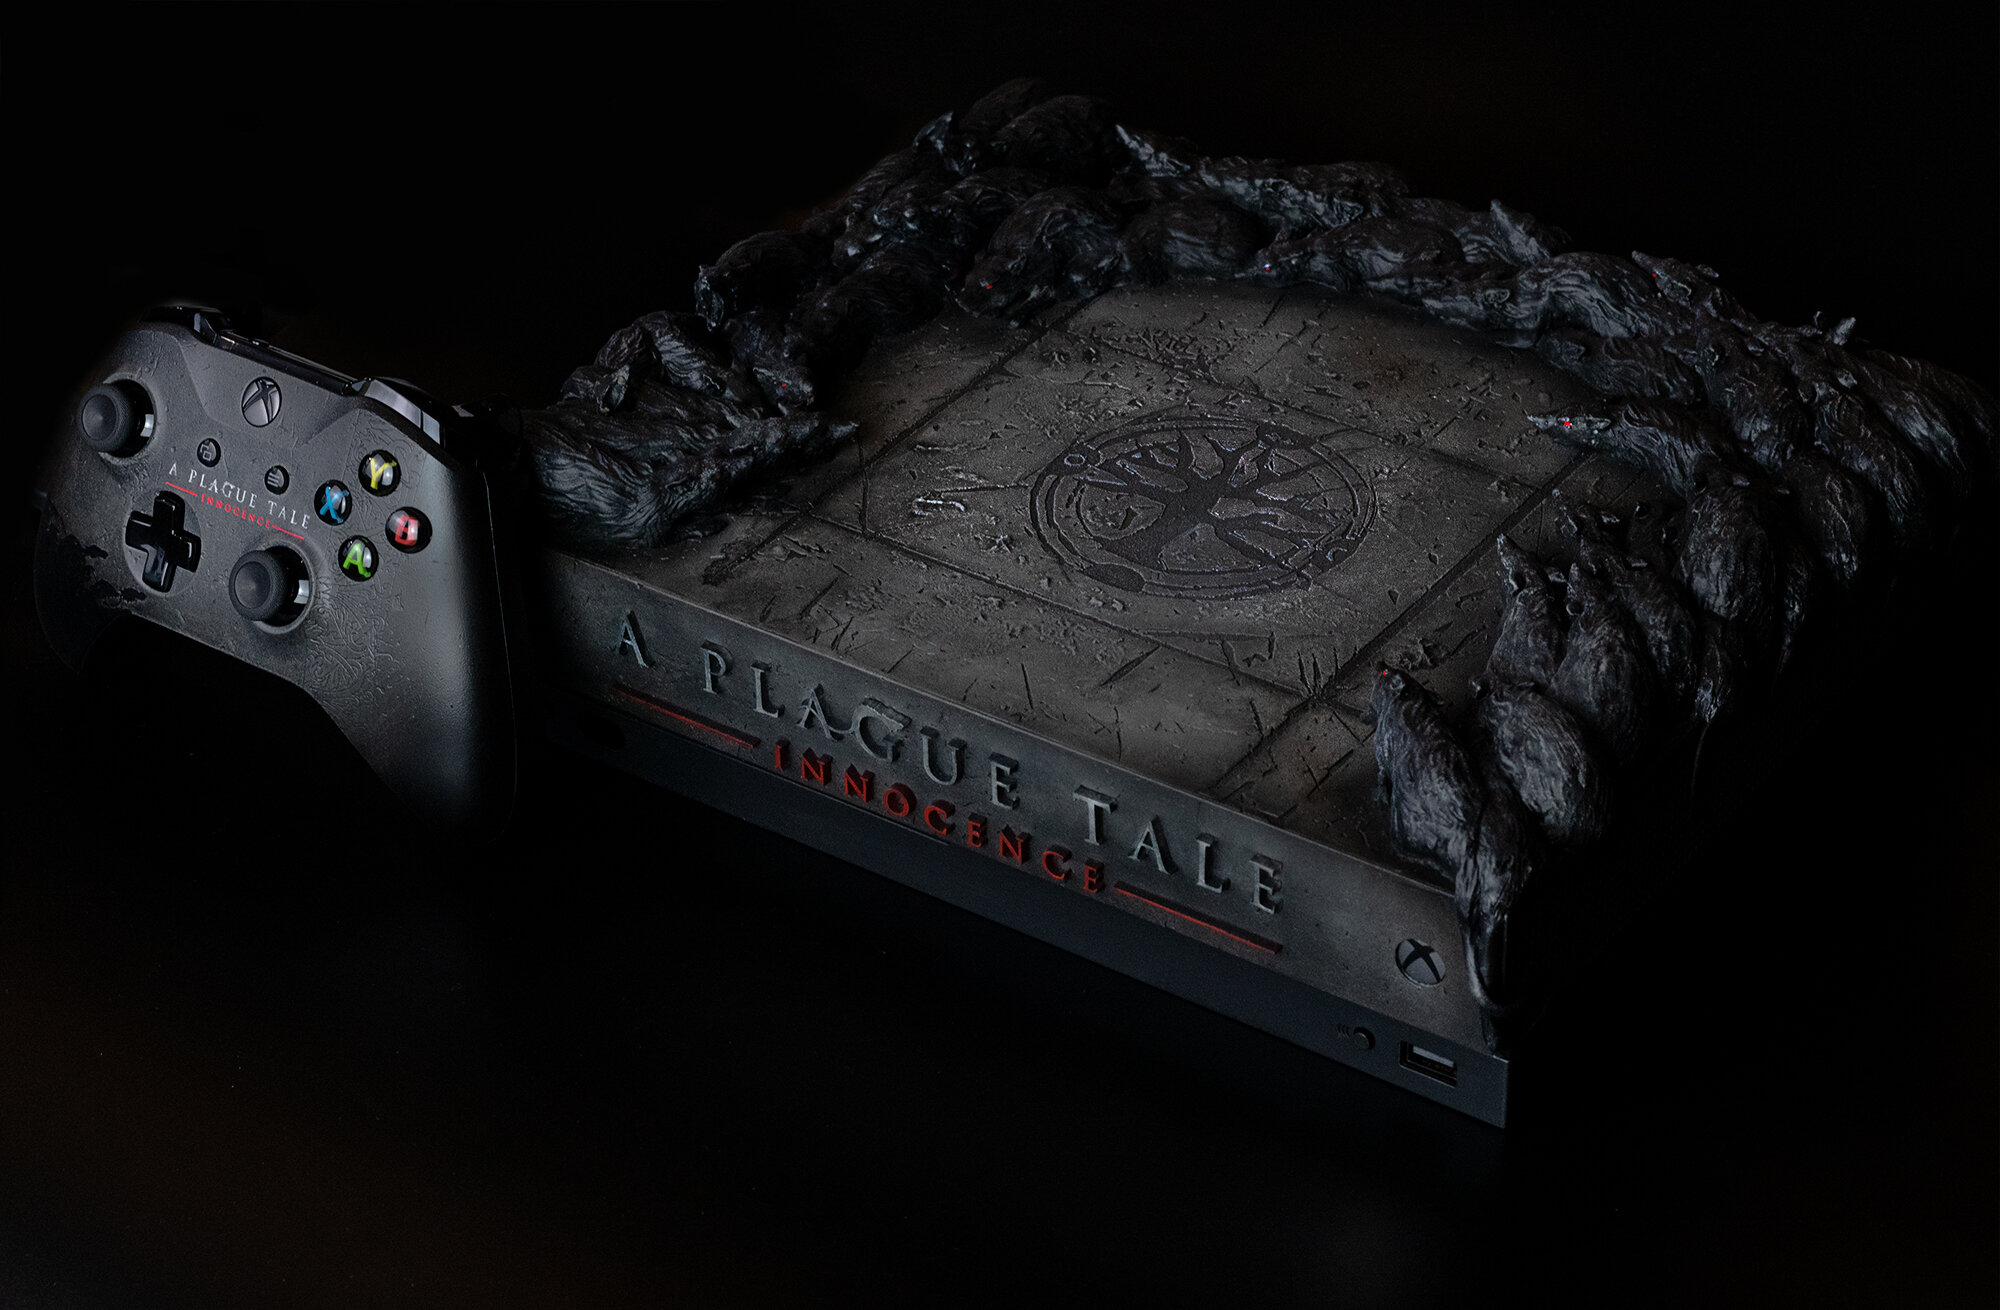 Xbox One X customized for A Plague Tale: Innocence